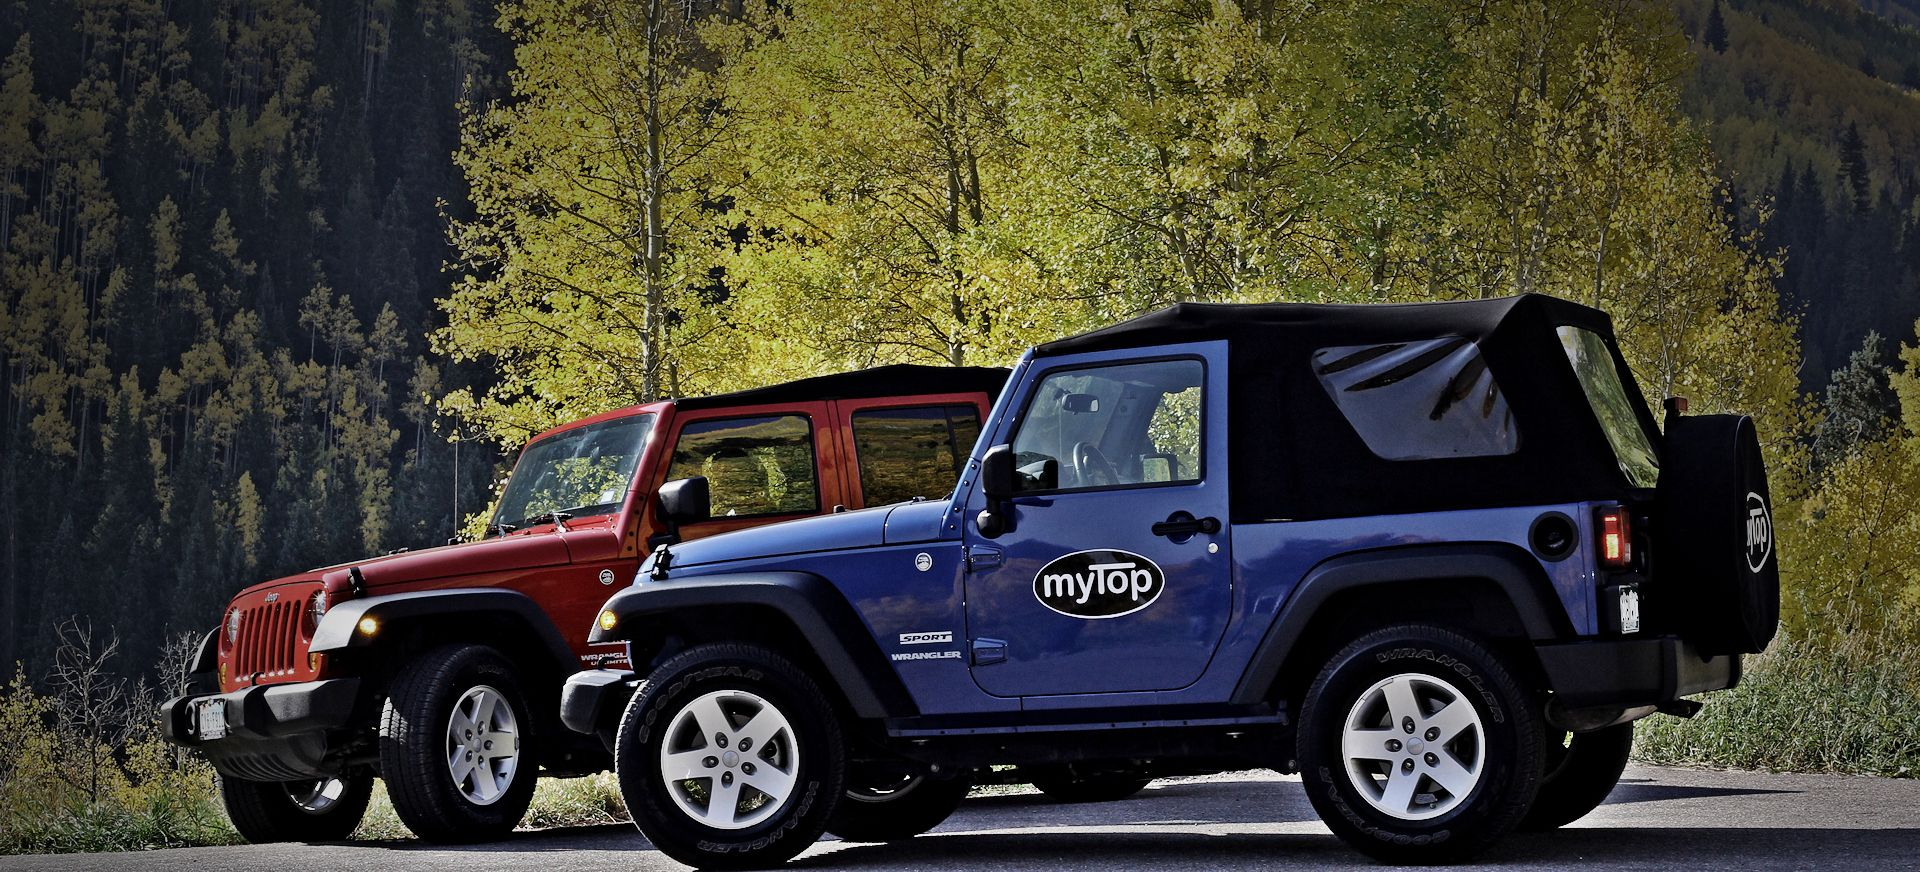 Mytop Is An All Electric Convertible Soft Top For The Jeep